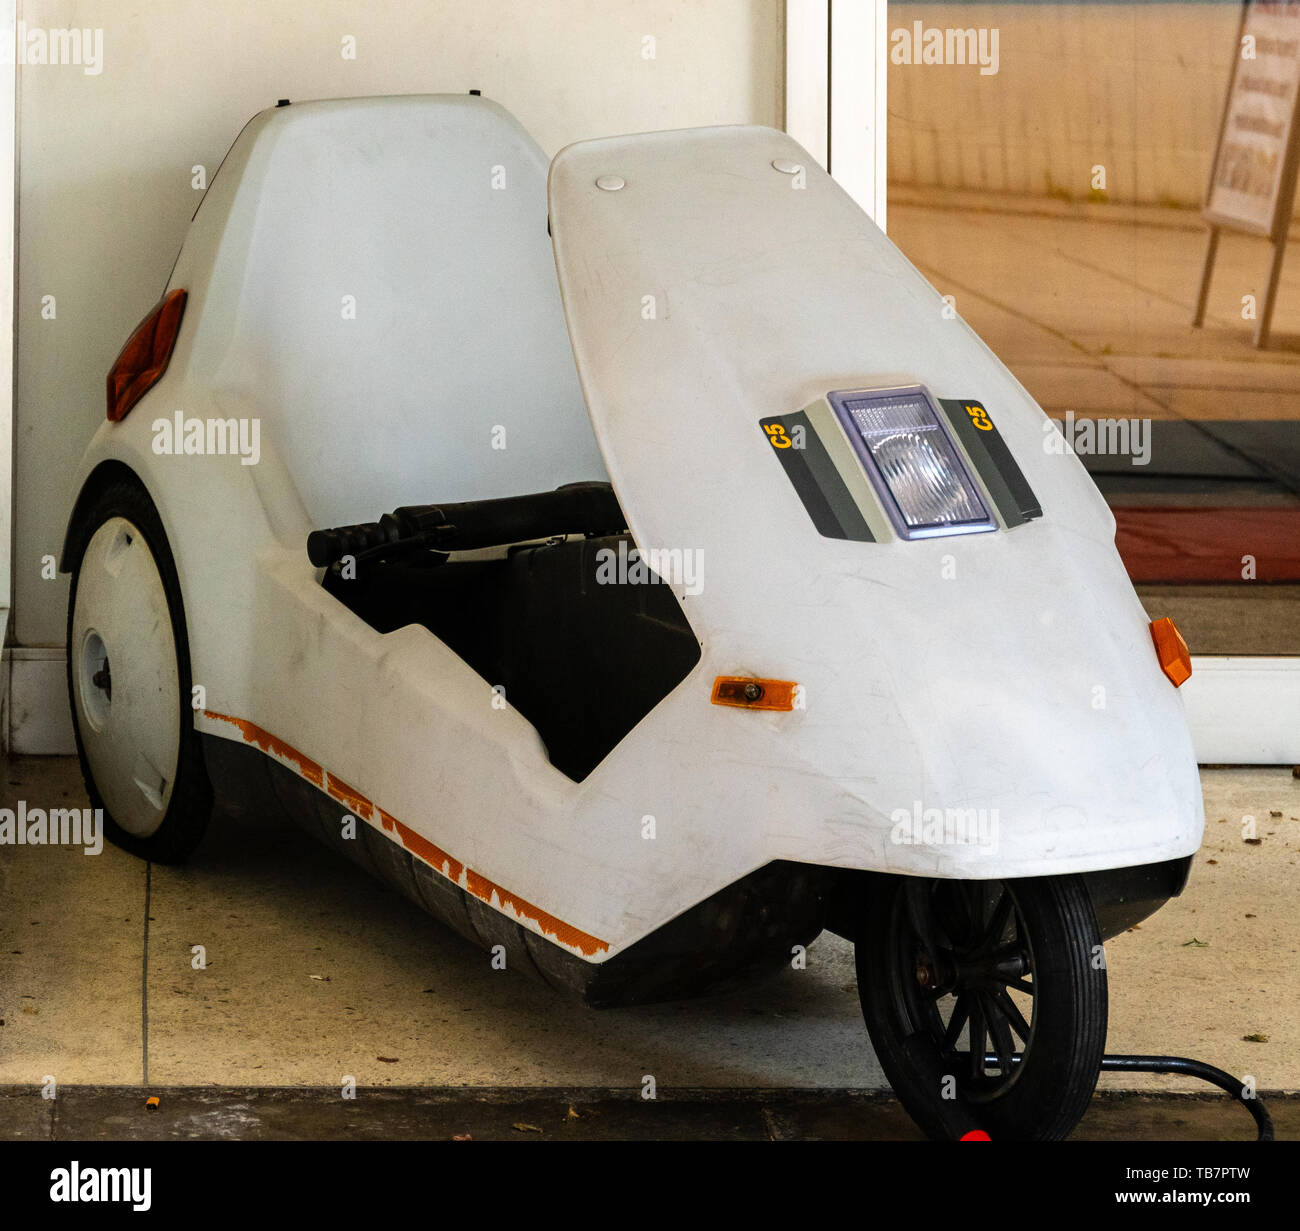 Electric Trike Stock Photos & Electric Trike Stock Images - Alamy